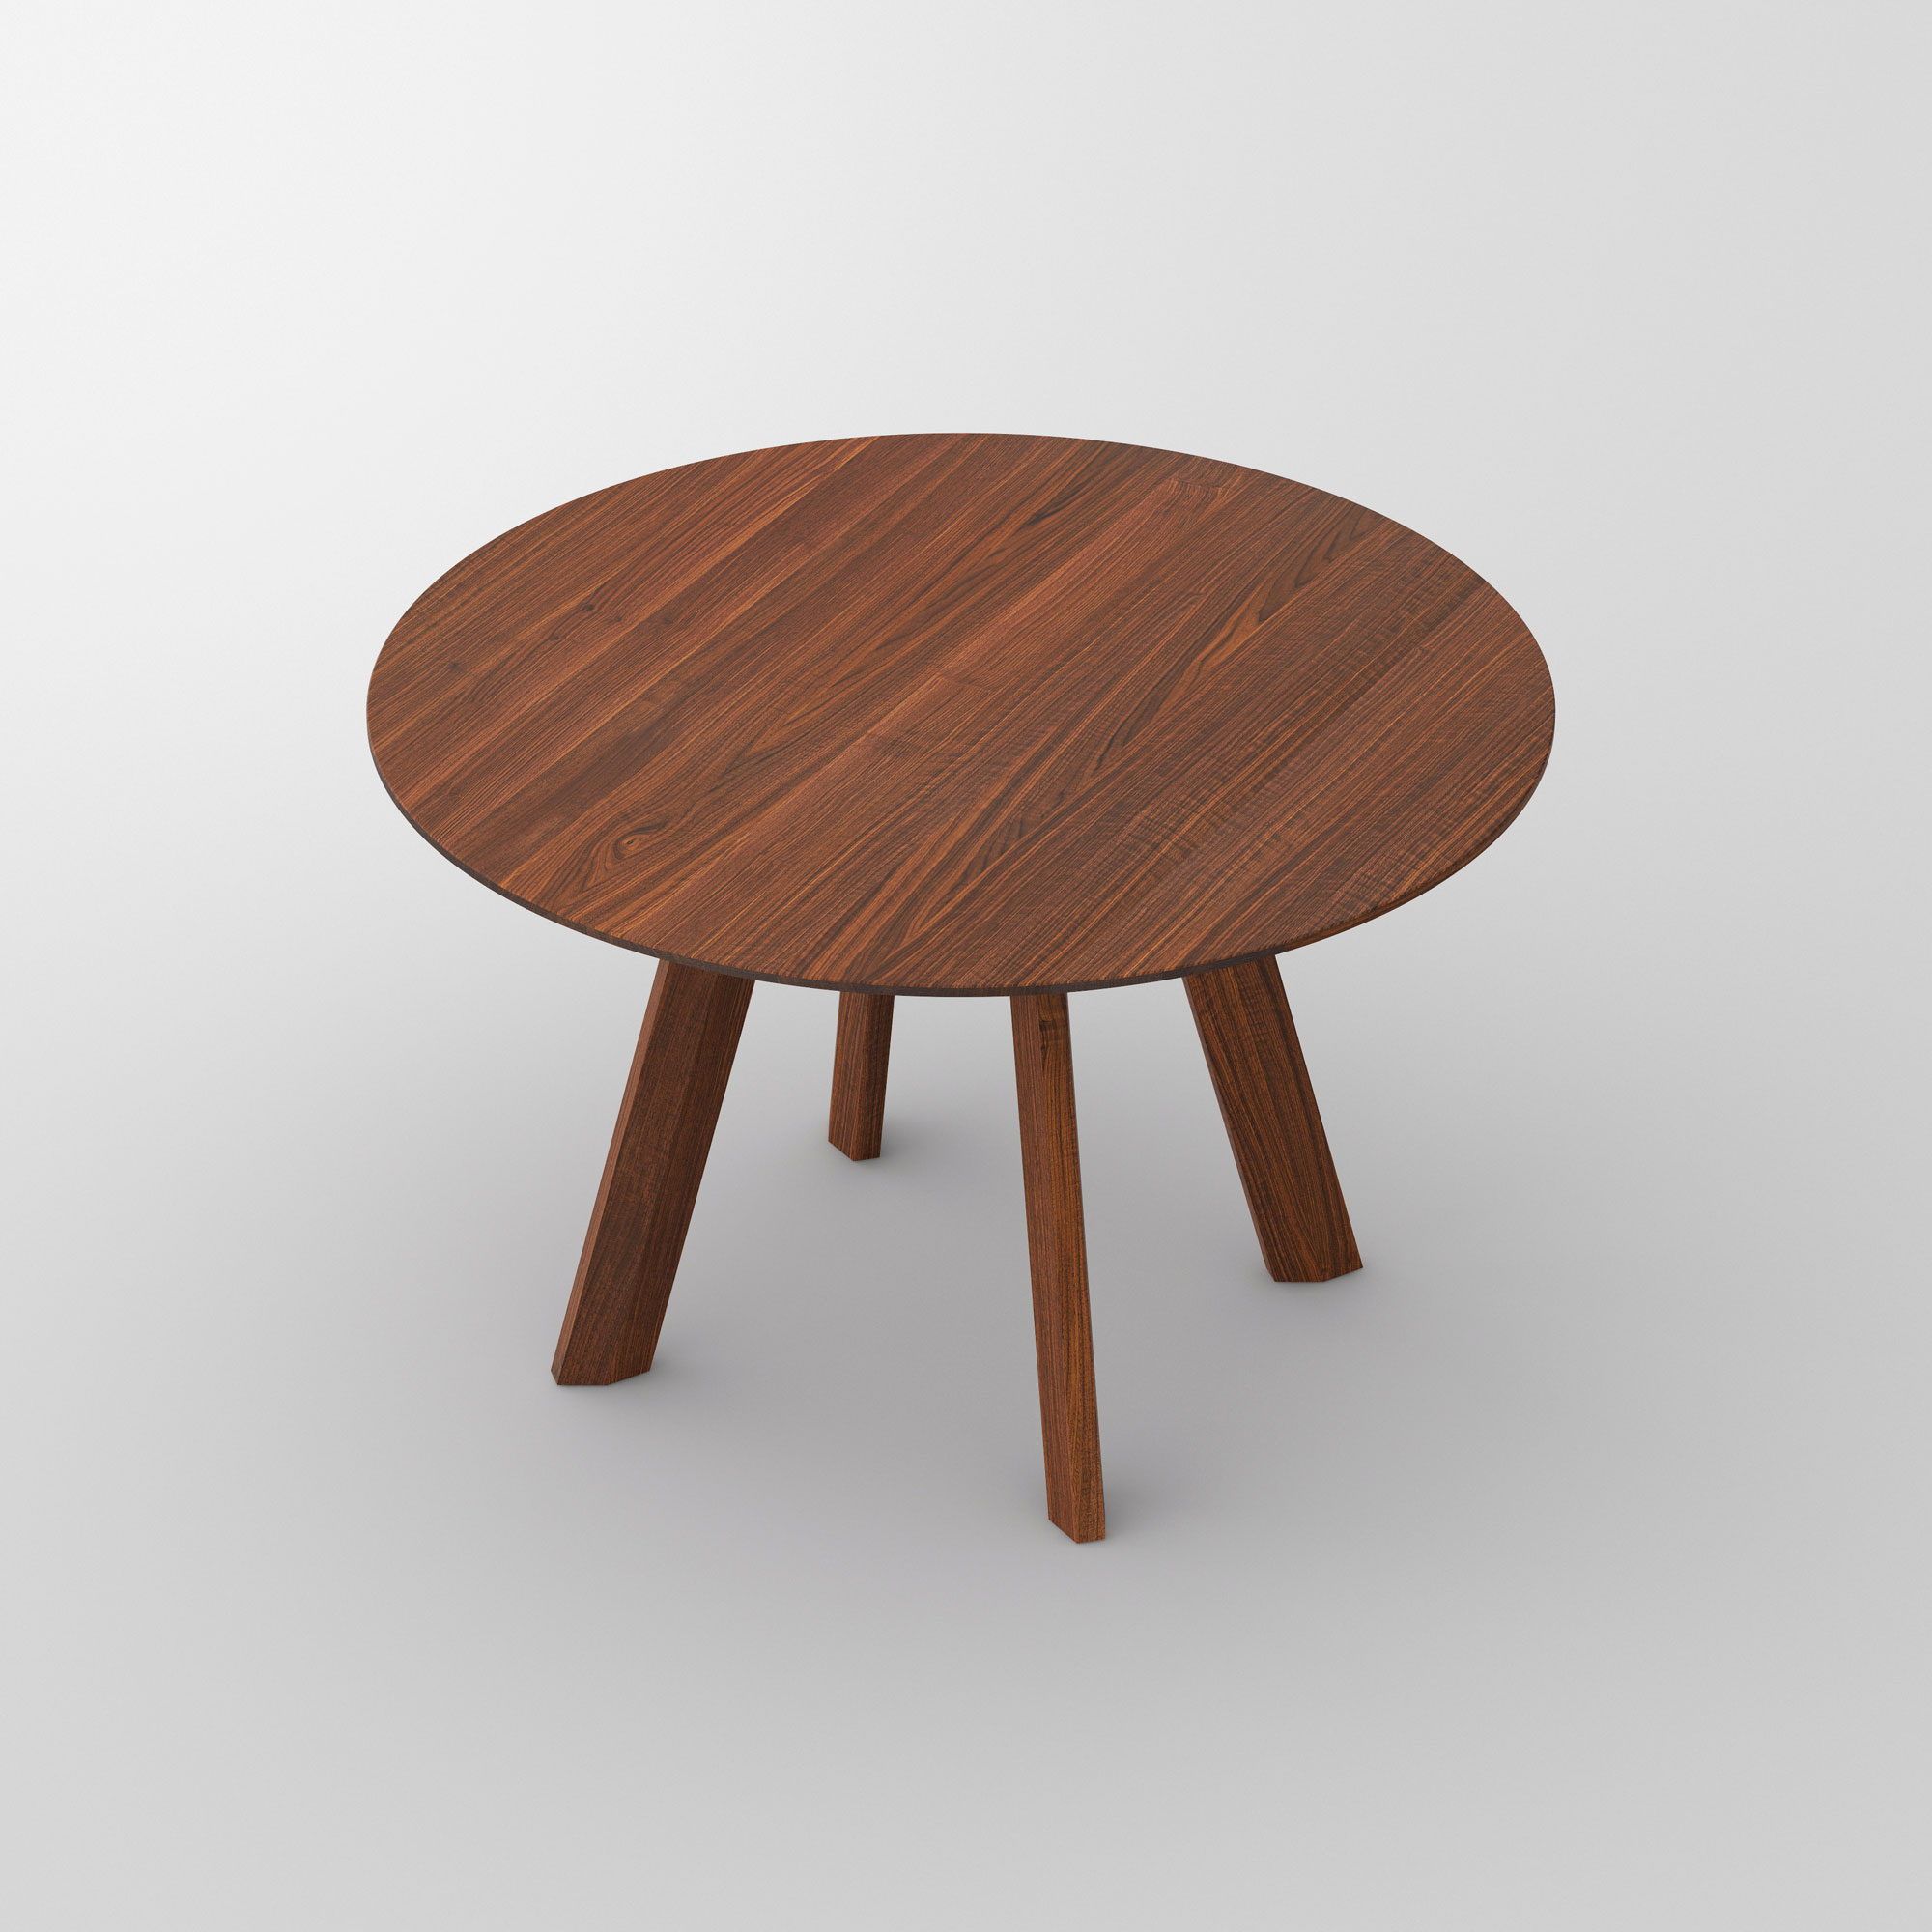 Designer Round Table RHOMBI ROUND cam3 custom made in solid wood by vitamin design